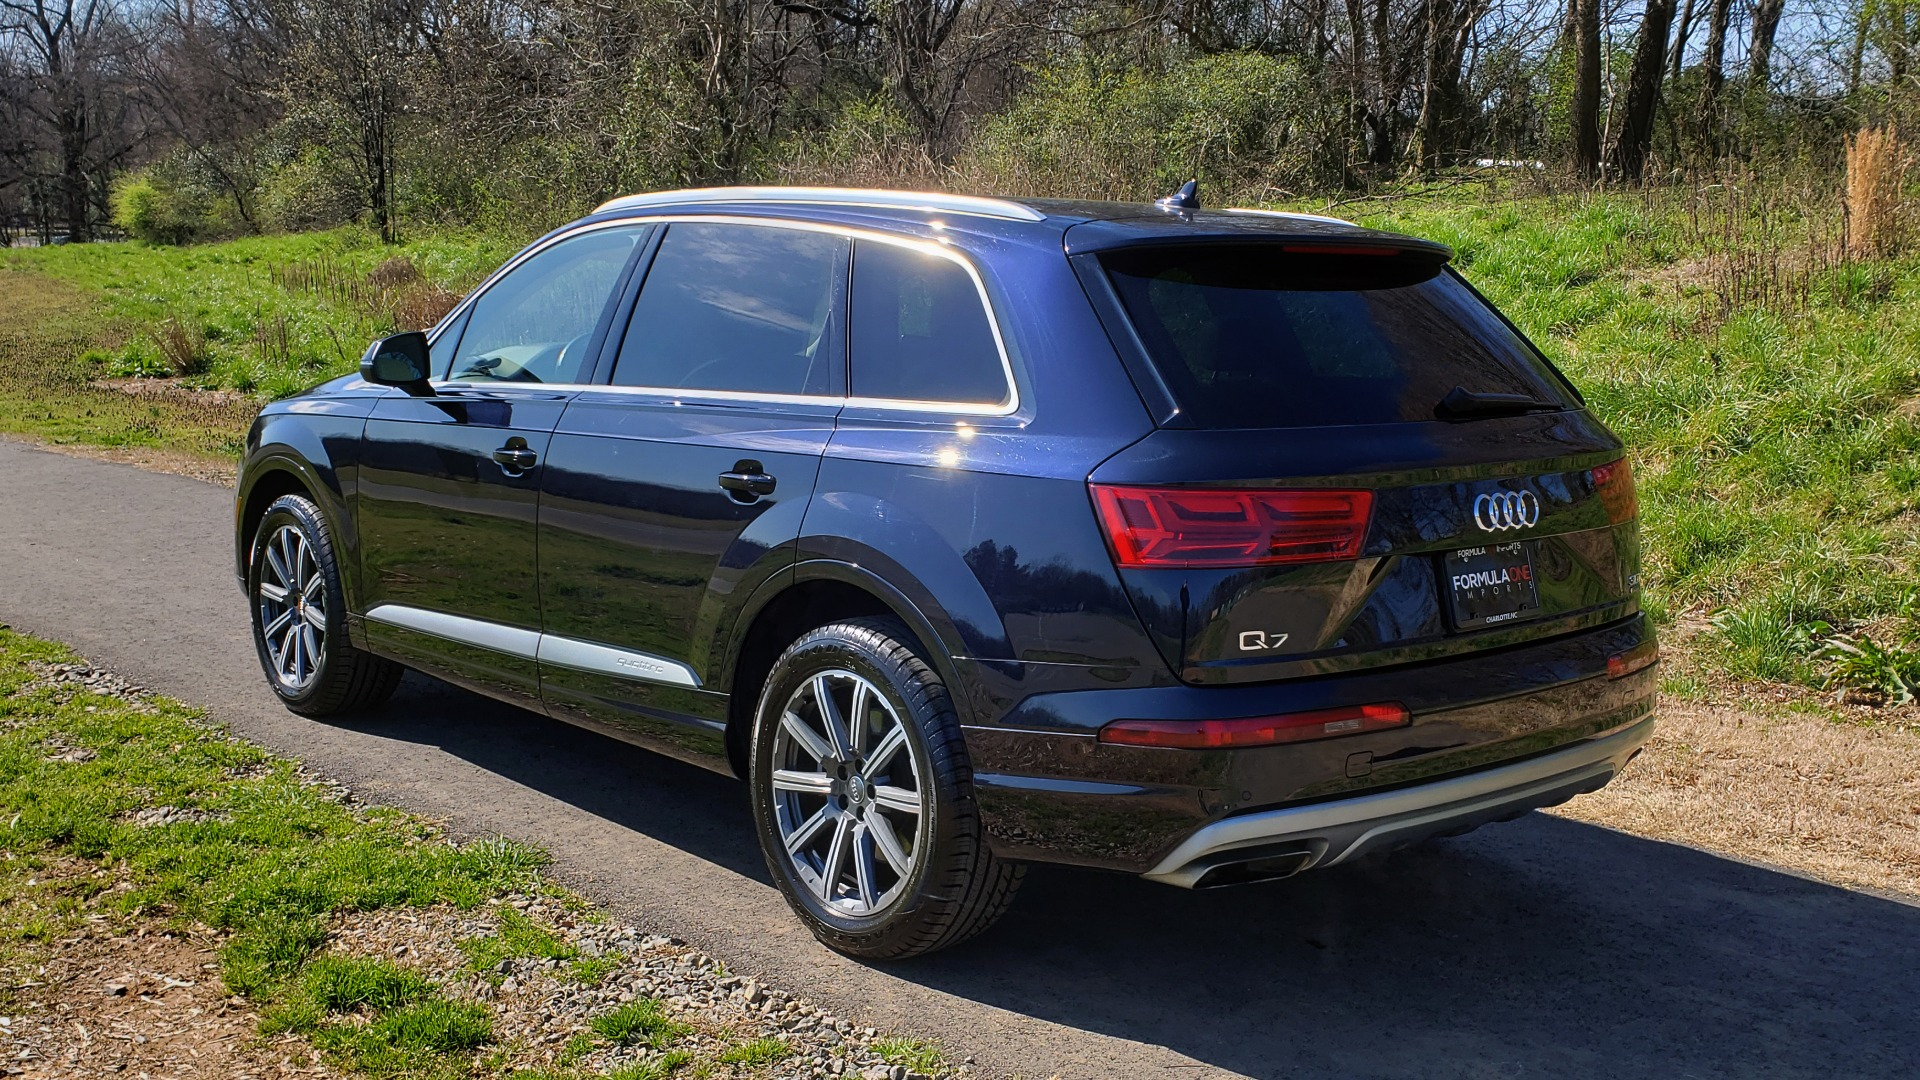 Used 2018 Audi Q7 PRESTIGE 3.0T CLD WTHR / NAV / BOSE / HEADS-UP / REARVIEW for sale Sold at Formula Imports in Charlotte NC 28227 3